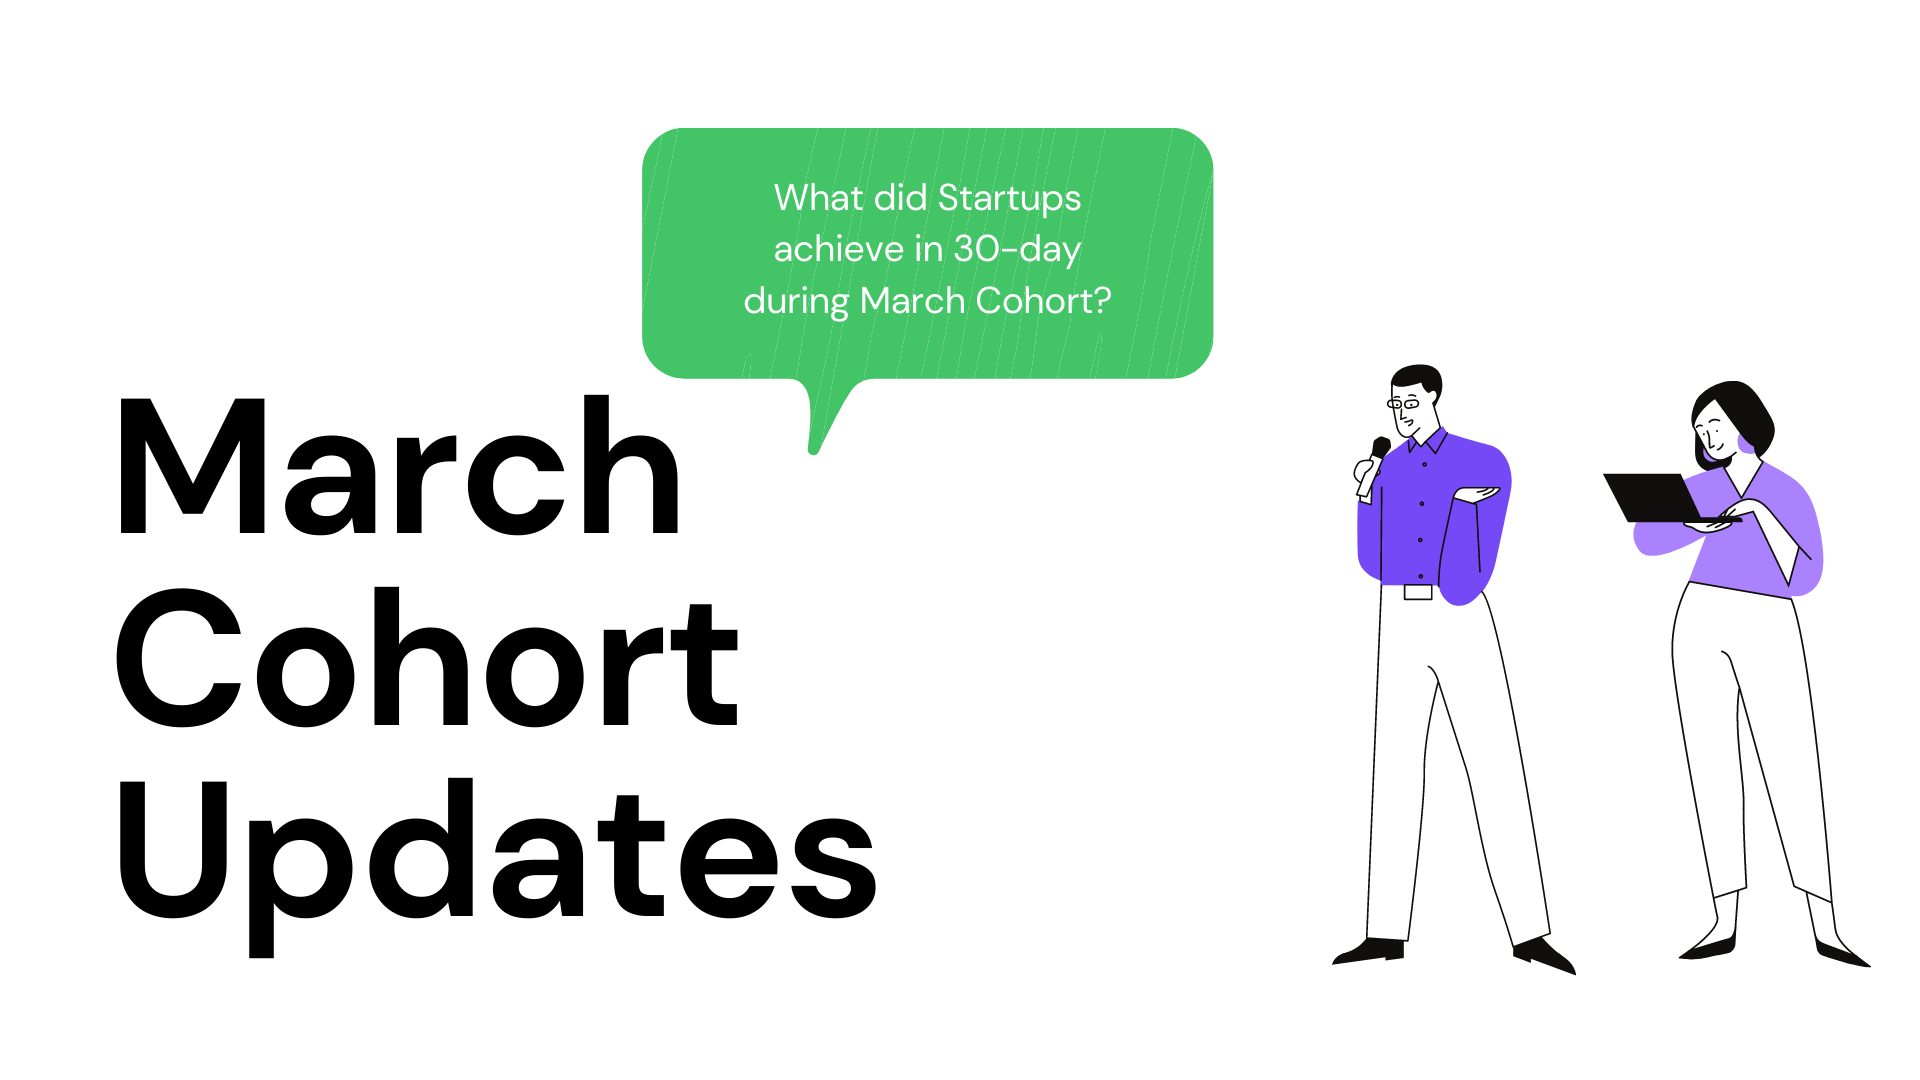 What did Startups achieve in 30-day during March Cohort?